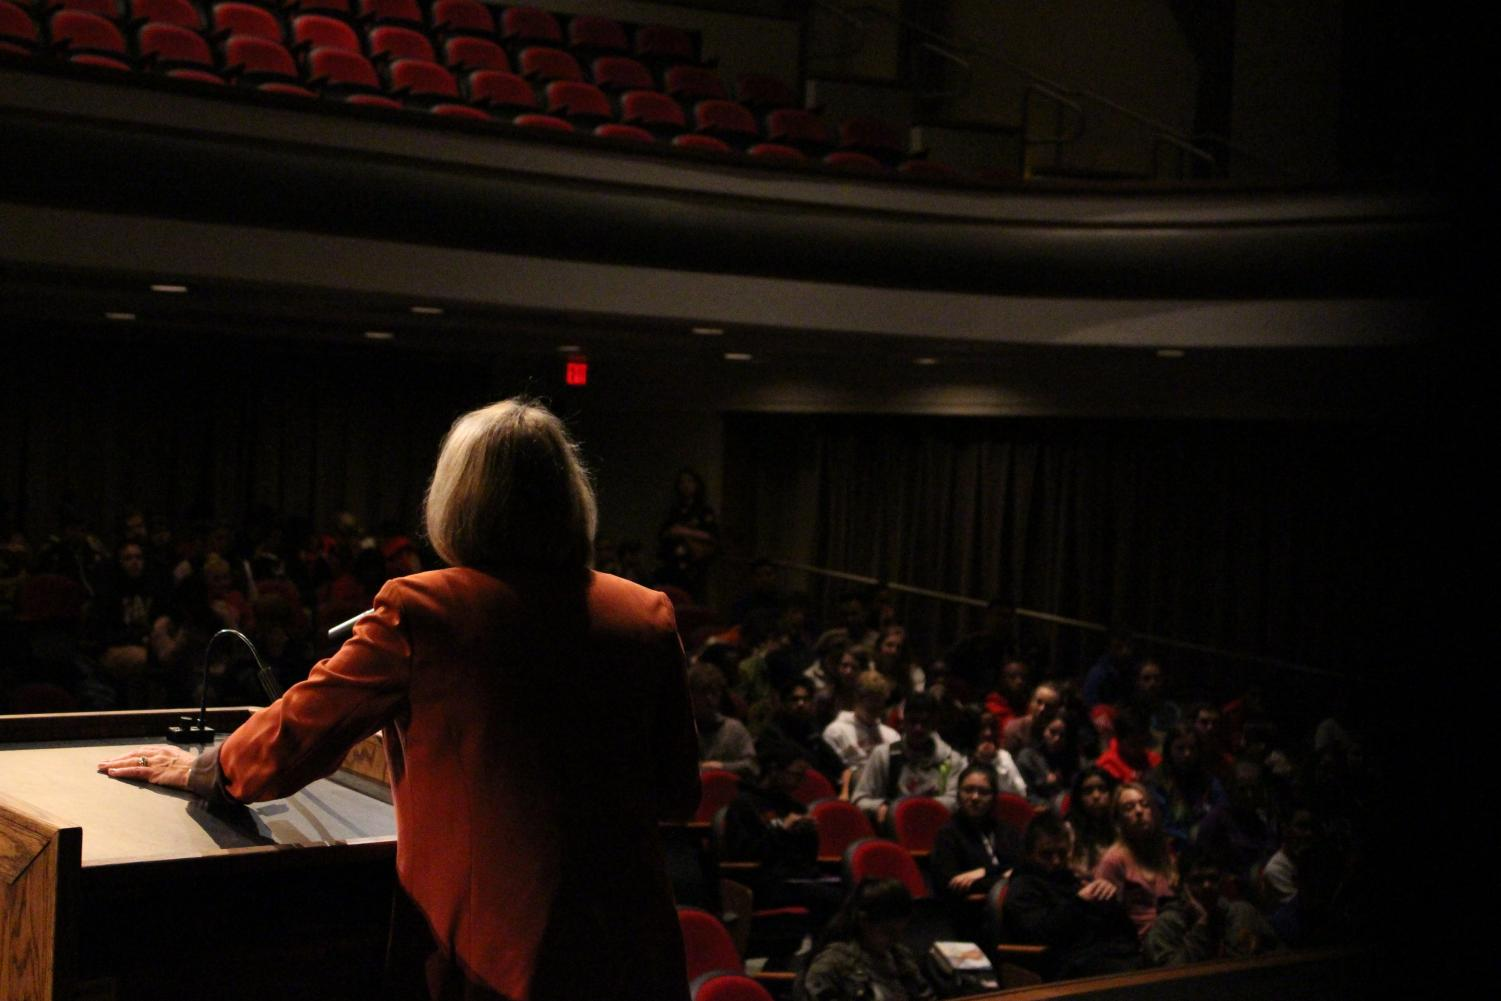 Democratic Nebraska Senate candidate Jane Raybould speaks about her initiatives and ideas to third period social studies classes at Lincoln High School in the Ted Sorensen Theatre on Tuesday, Oct. 30, 2018. Raybould will face Republican Deb Fischer in the General Election next week. Photo by Angel Tran